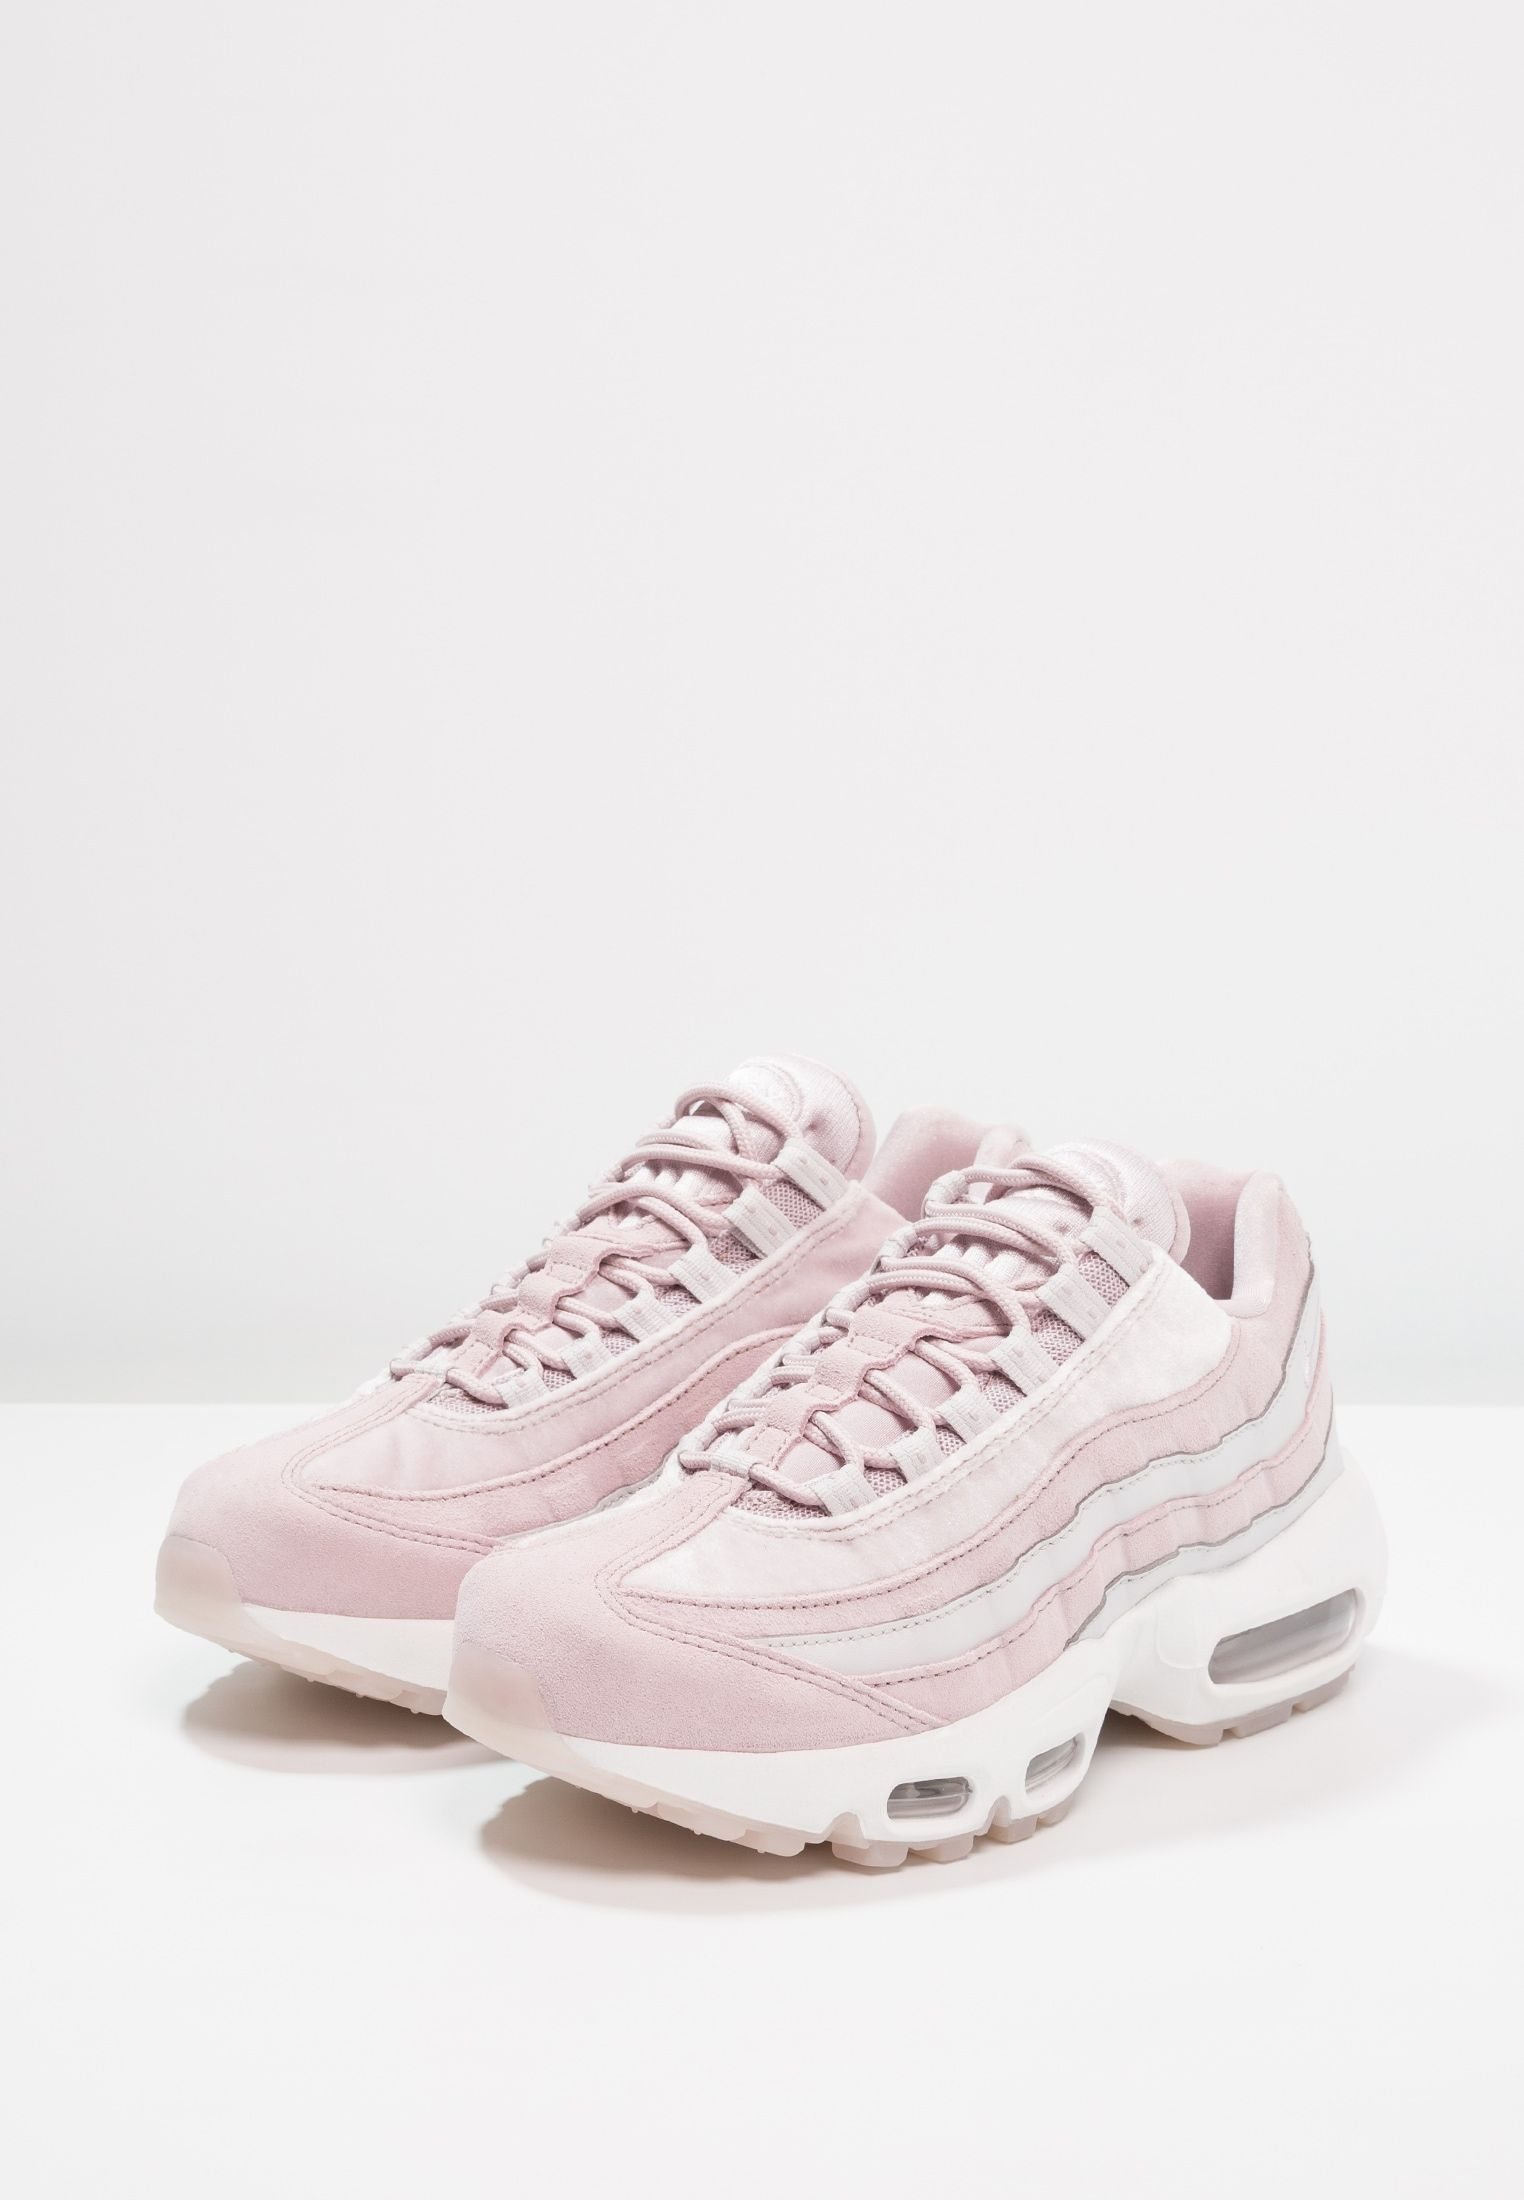 size 40 23f93 46351 Nike Sportswear AIR MAX 95 - Sneakers - particle rose vast grey summit white